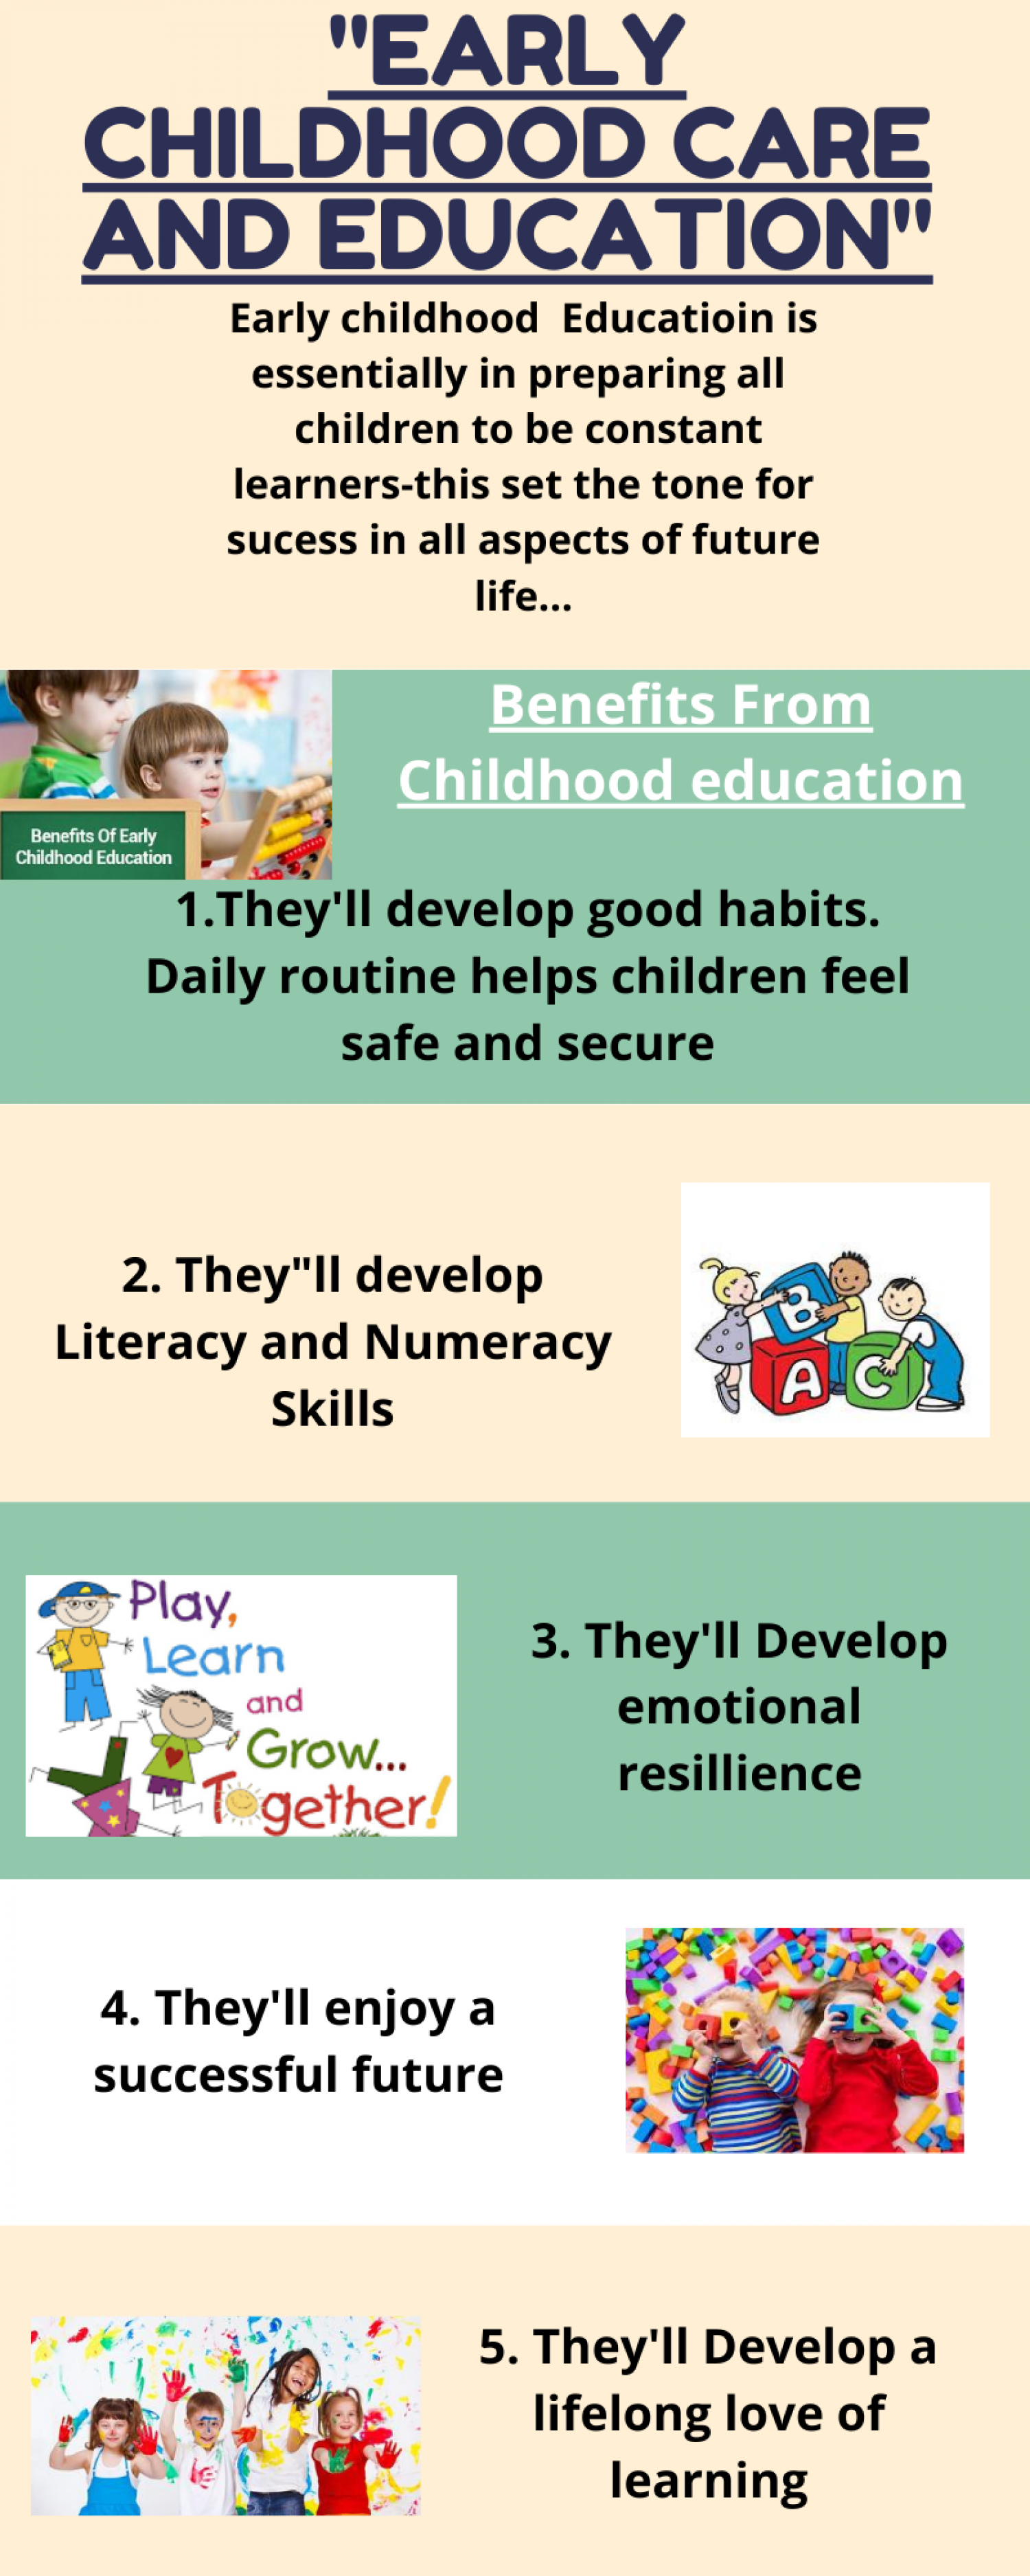 EARLY CHILDHOOD CARE AND EDUCATION Infographic